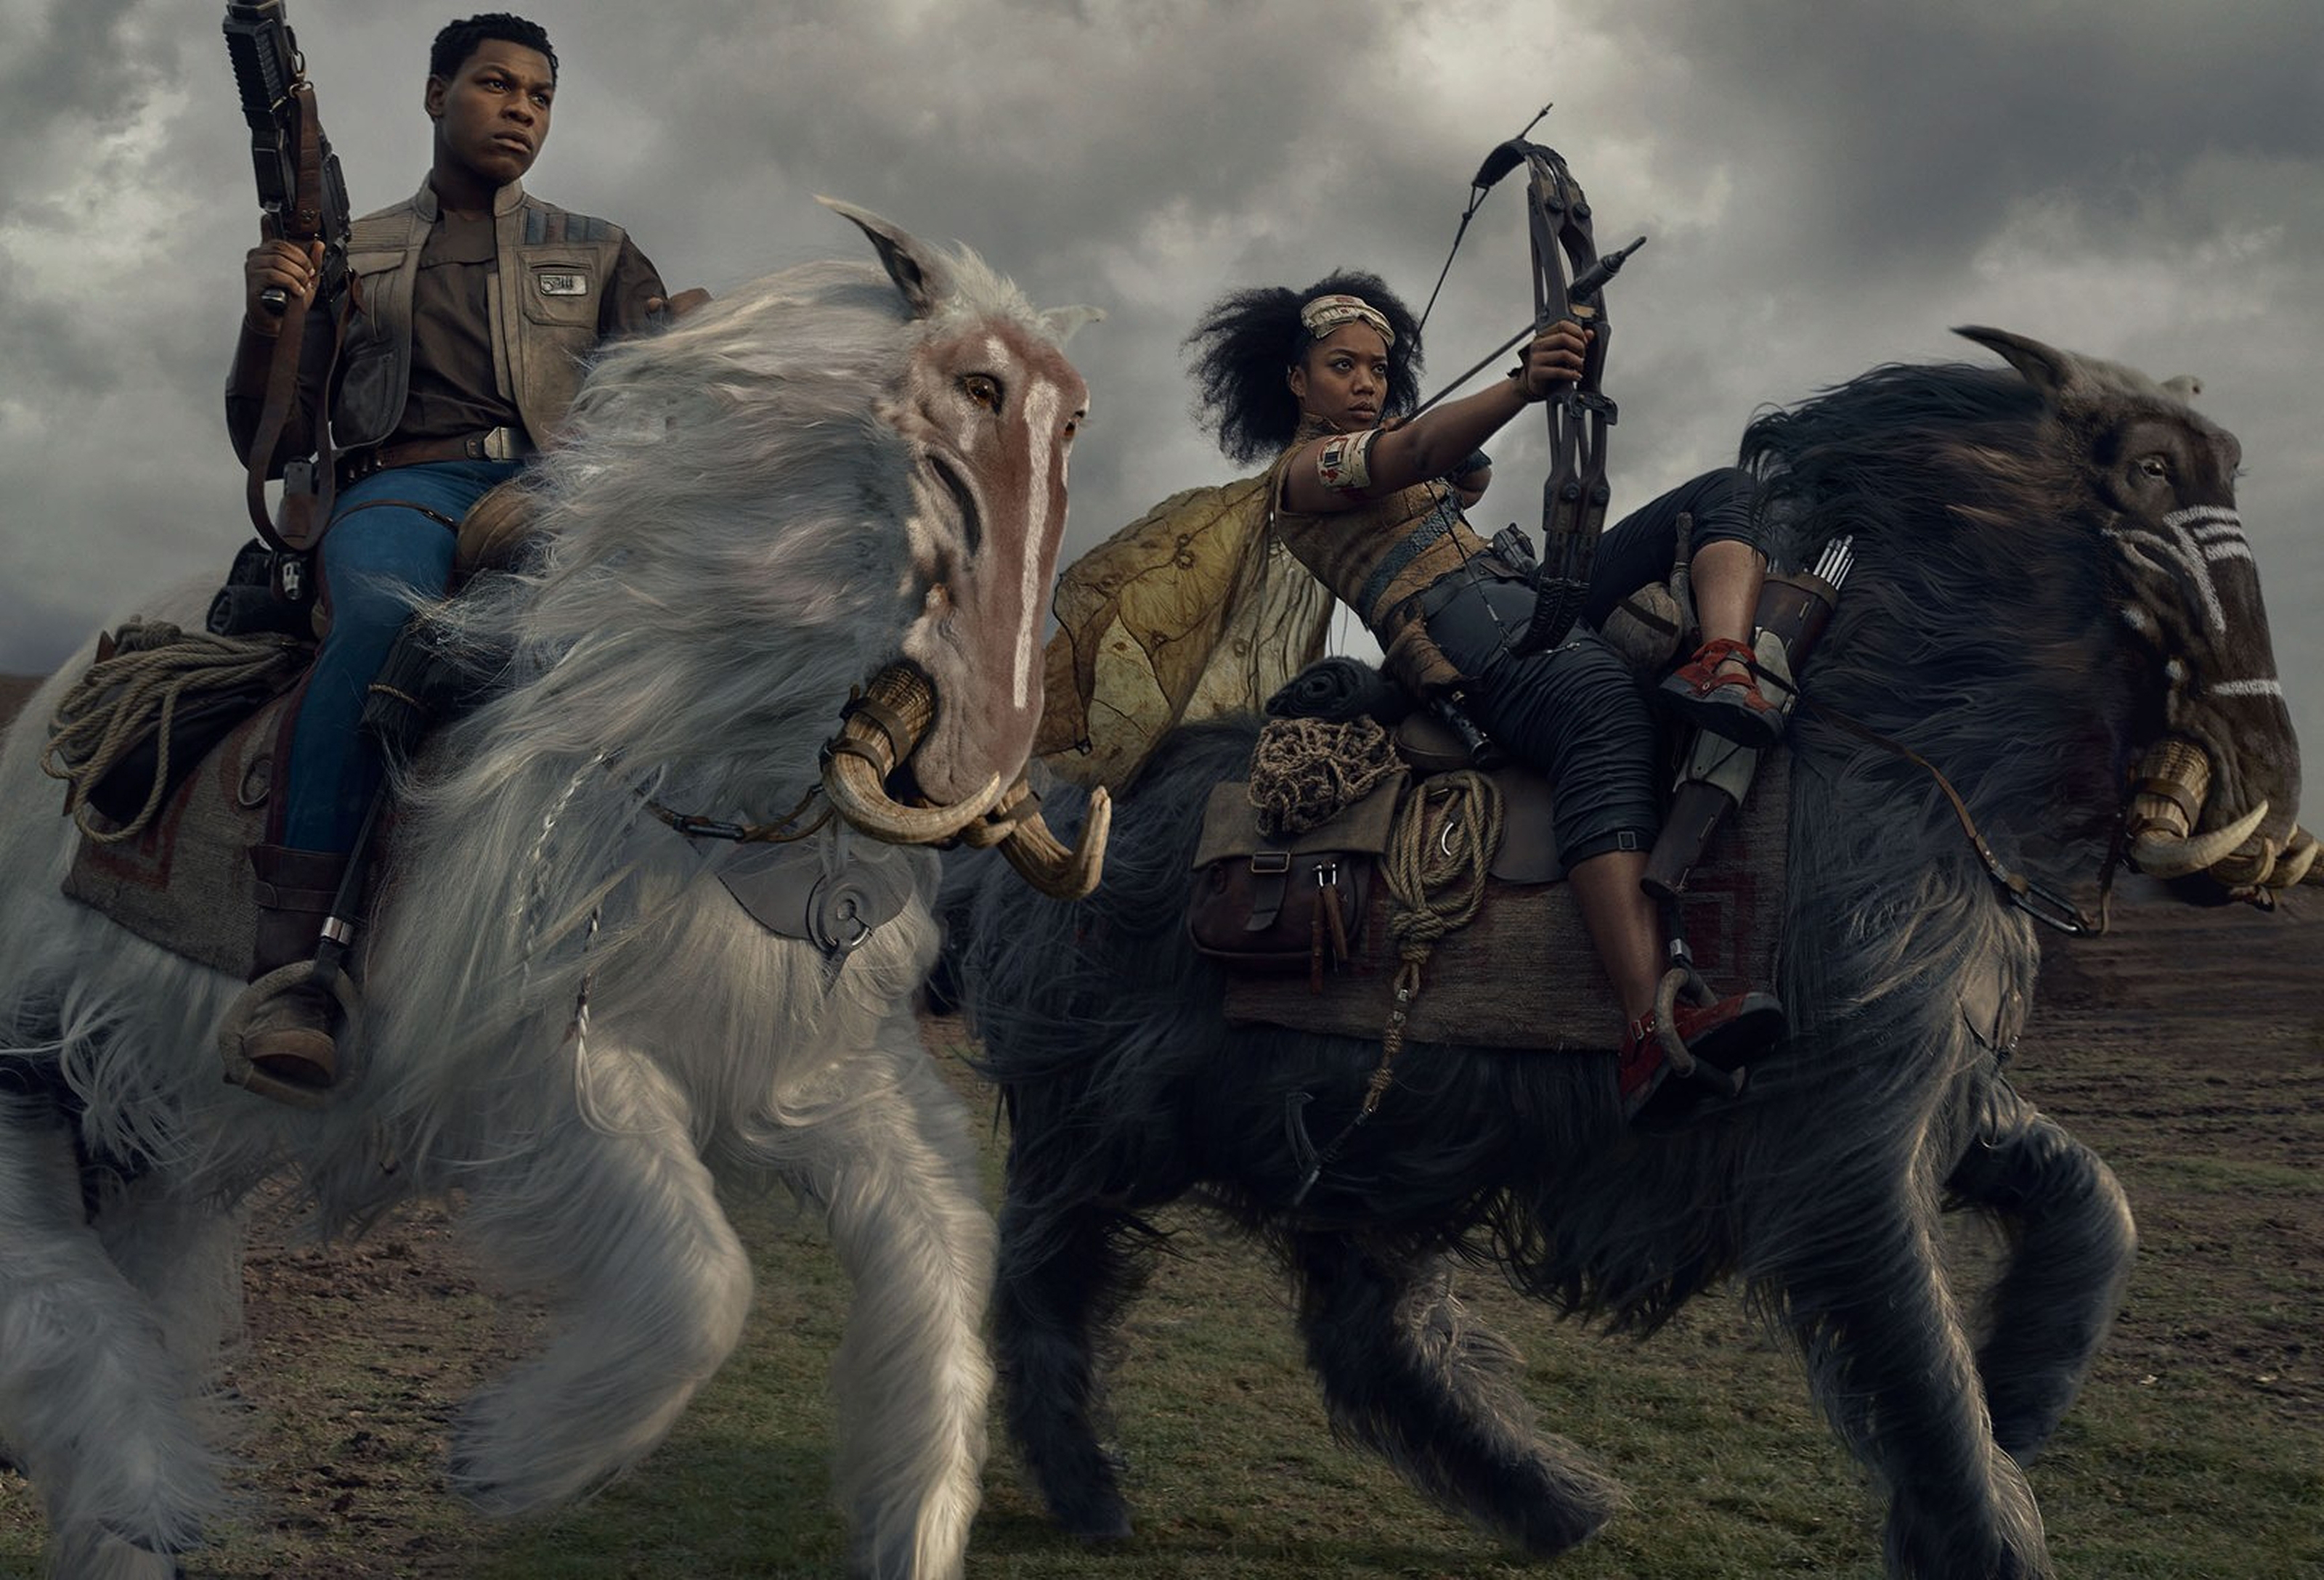 star-wars-the-rise-of-skywalker-vanity-fair-finn-and-jannah-played-by-naomi-ackie-on-orbaks-exclusive-hi-resolution-images-and-photos-by-annie-leibovitz.jpg